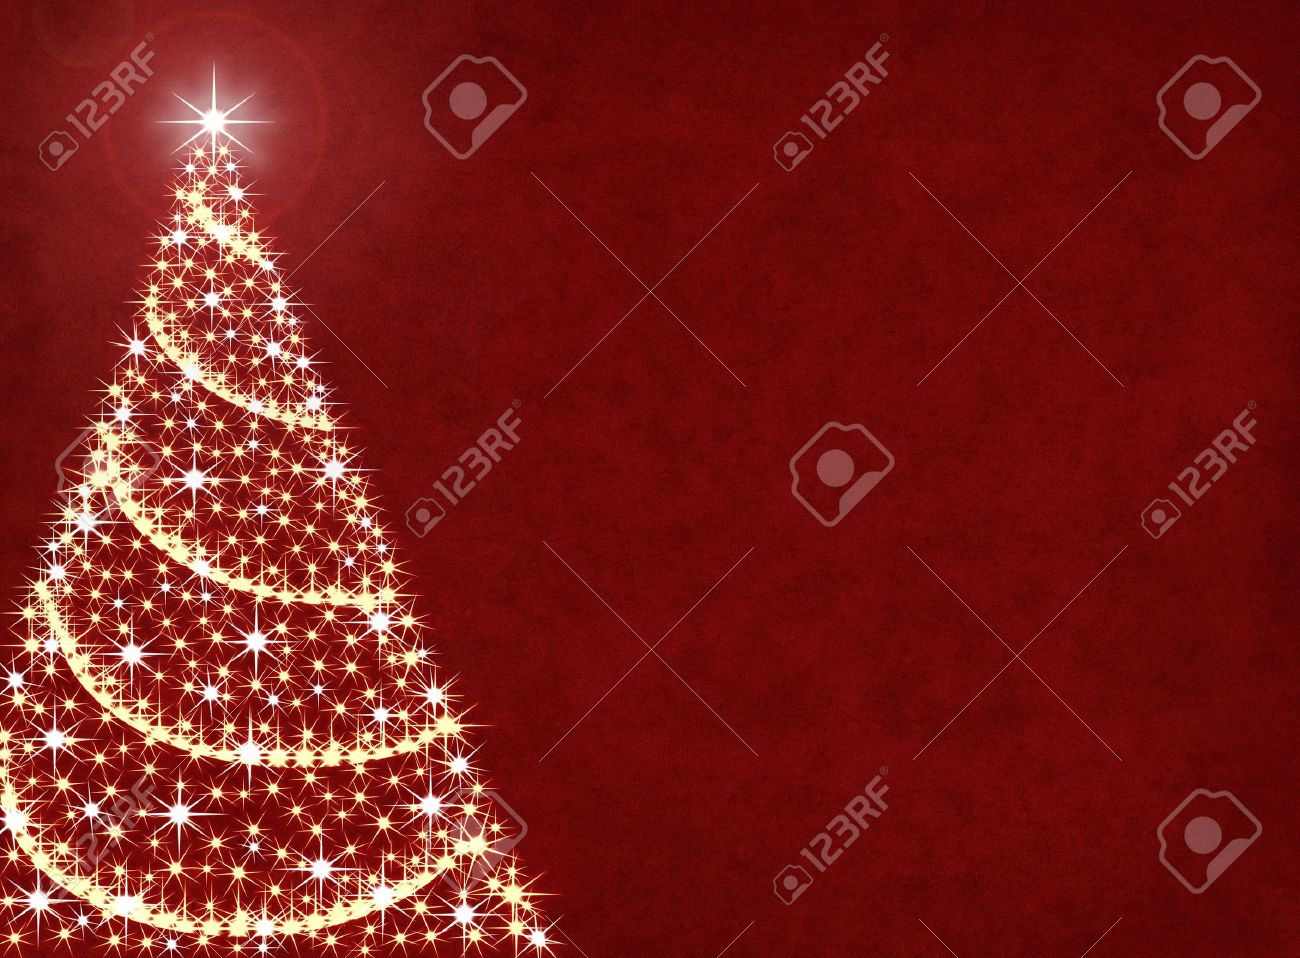 A Christmas Tree Illustration On A Textured Red Background. Stock ...